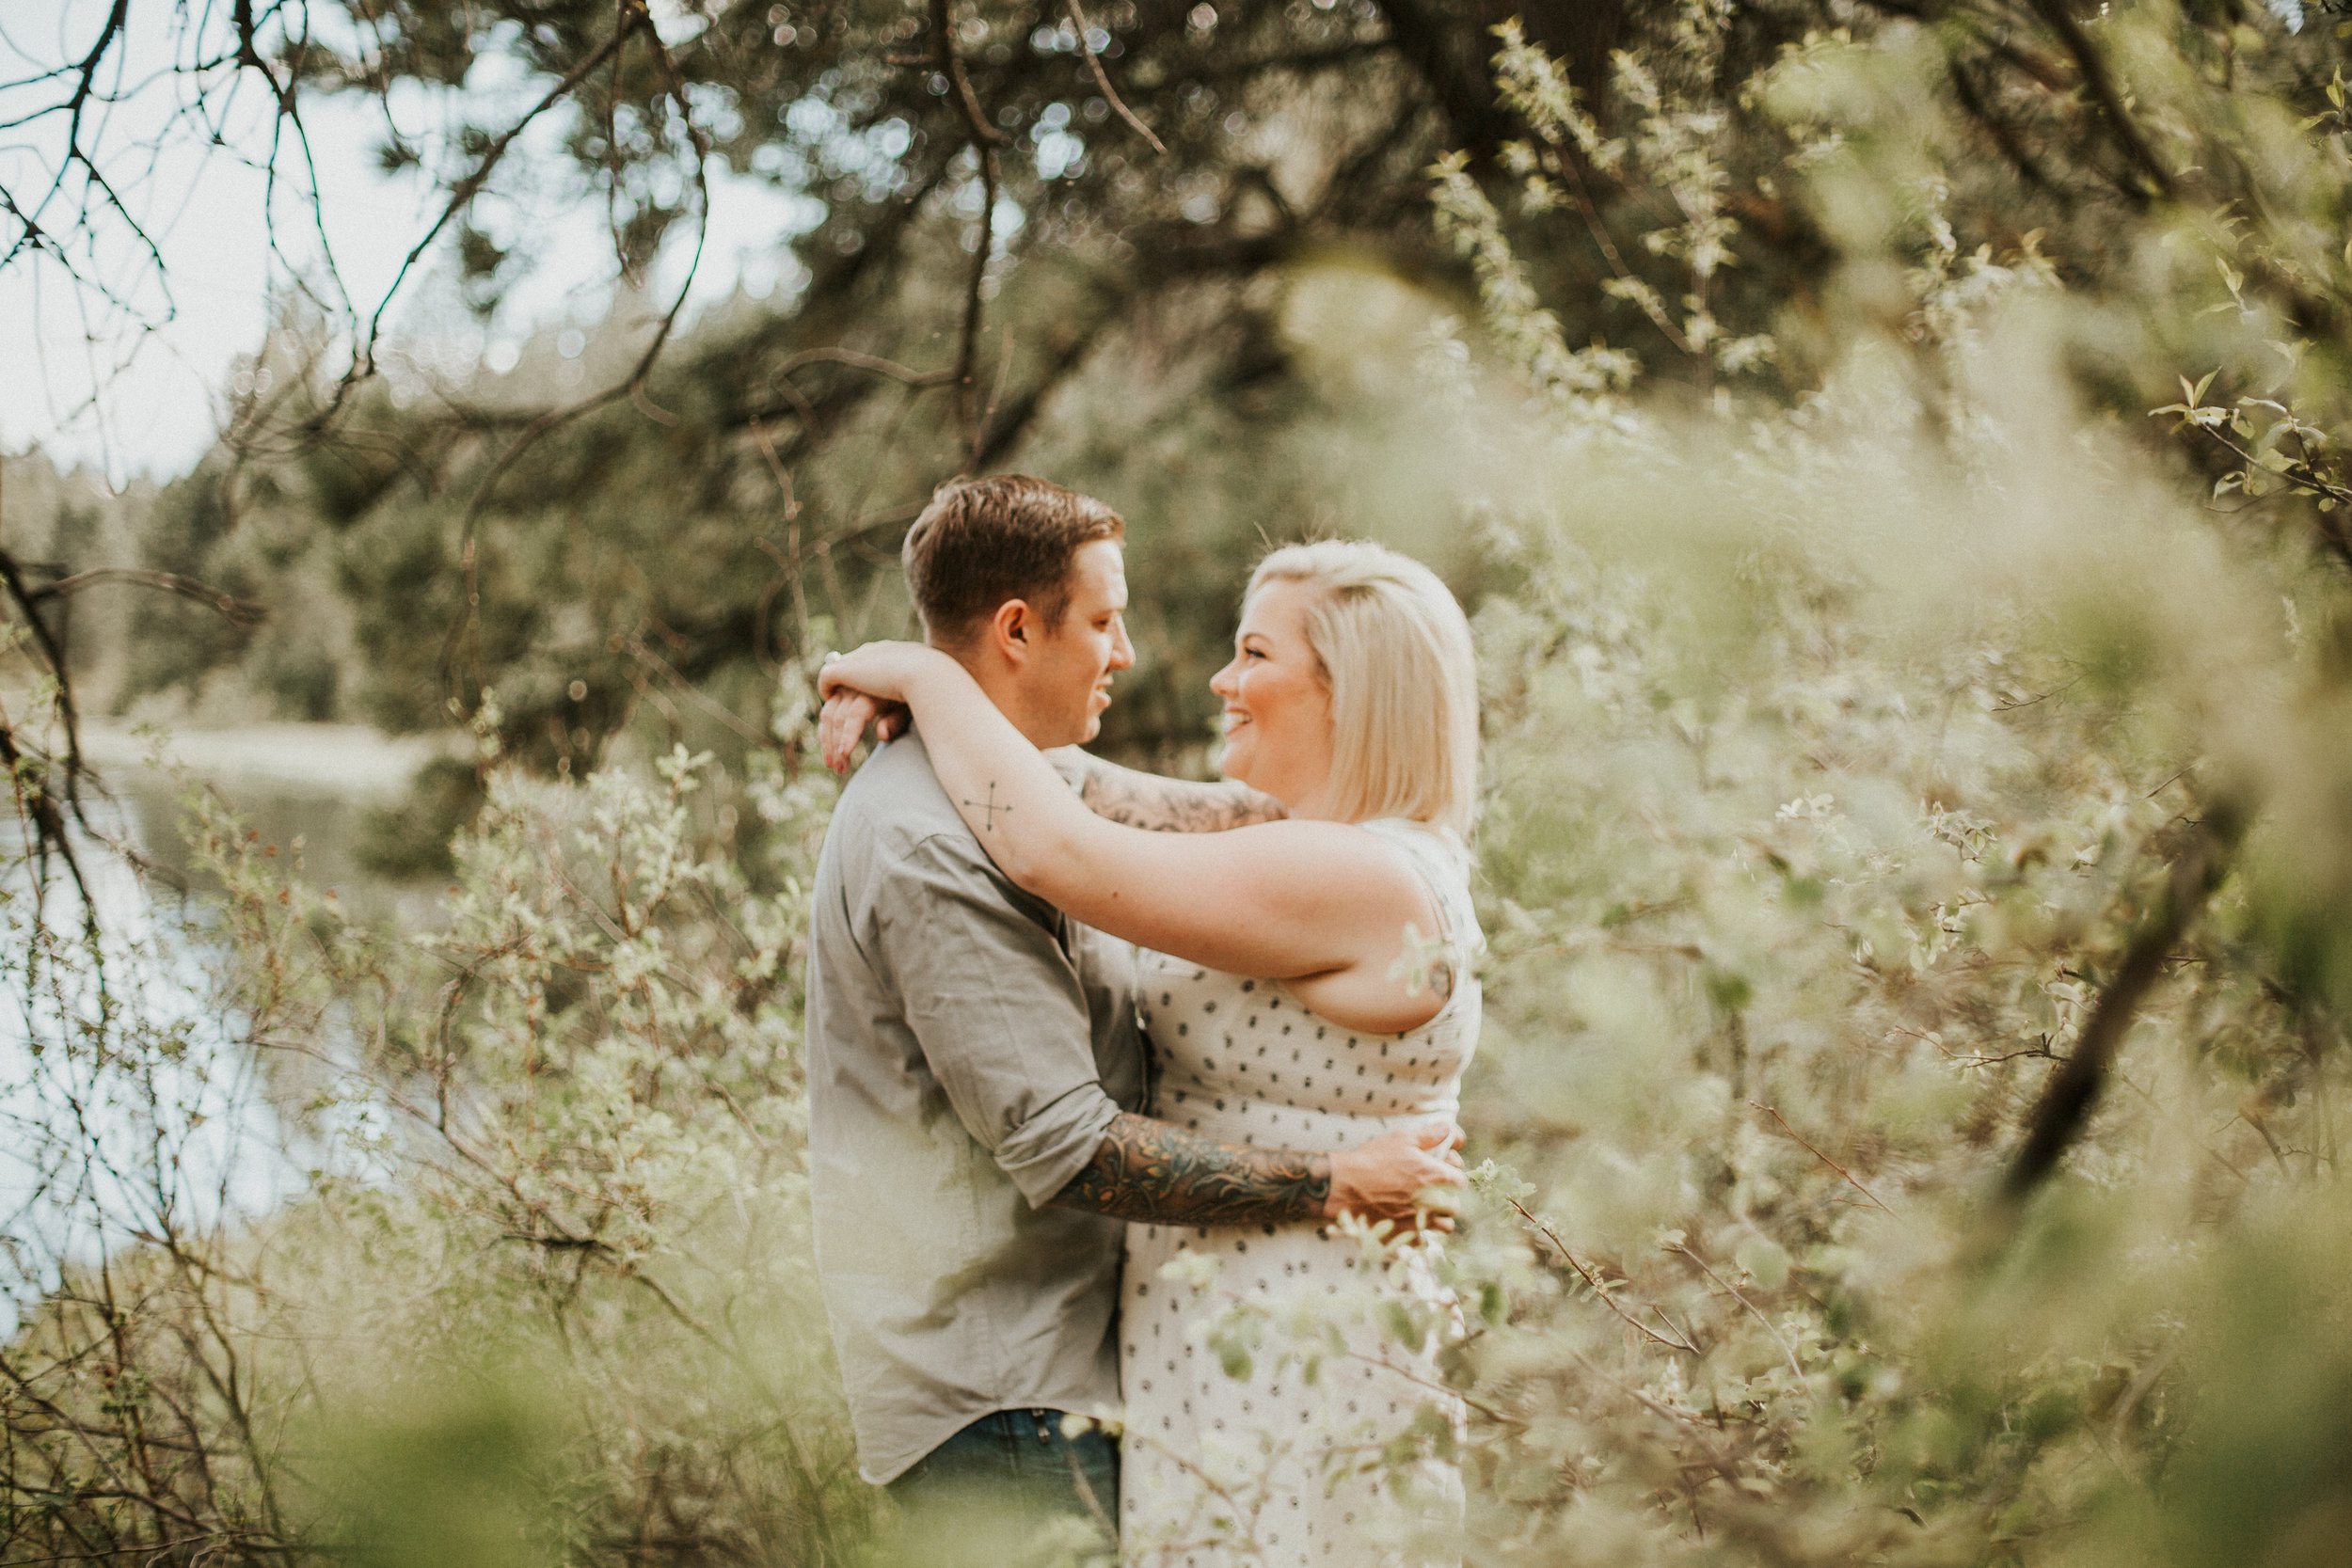 Spring Meadow Camp Engagements, Bend Oregon | Rosemary & Pine Photography